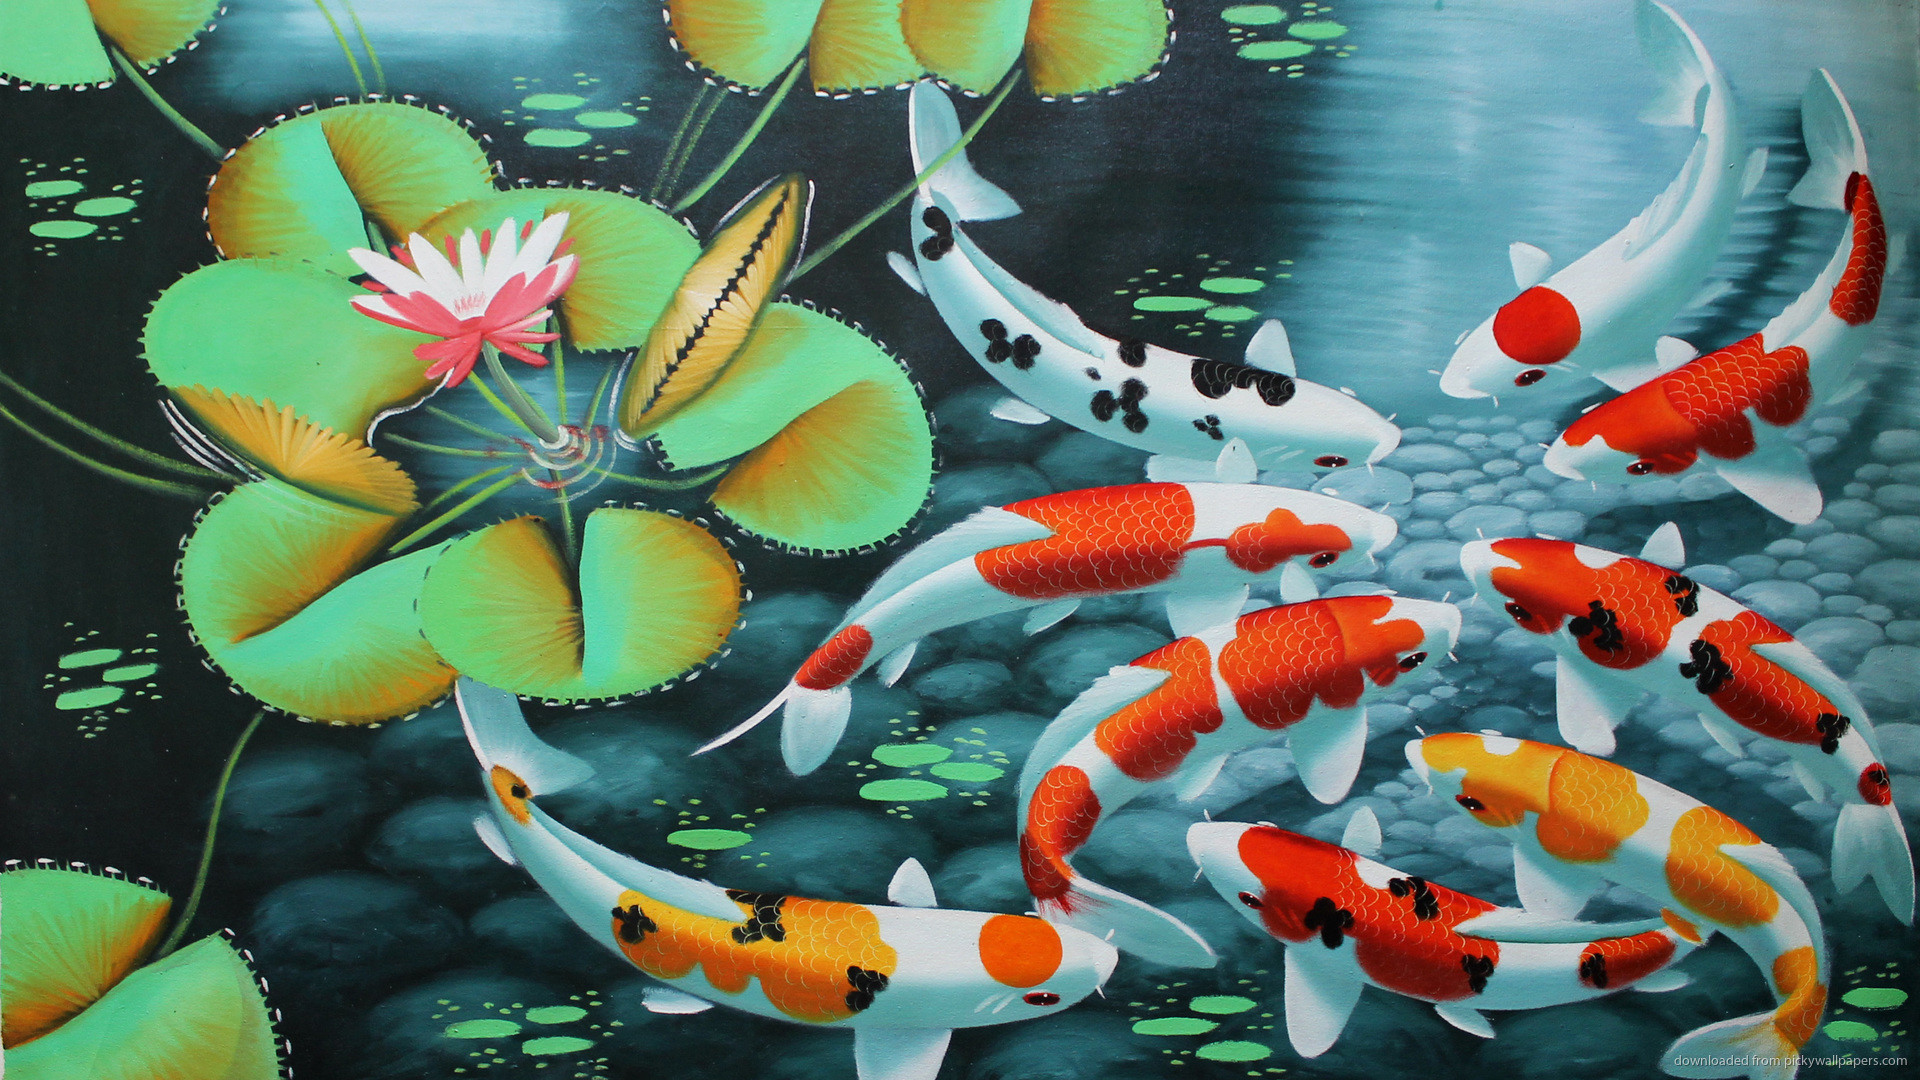 Koi fish wallpaper 59 images for Koi fish wallpaper